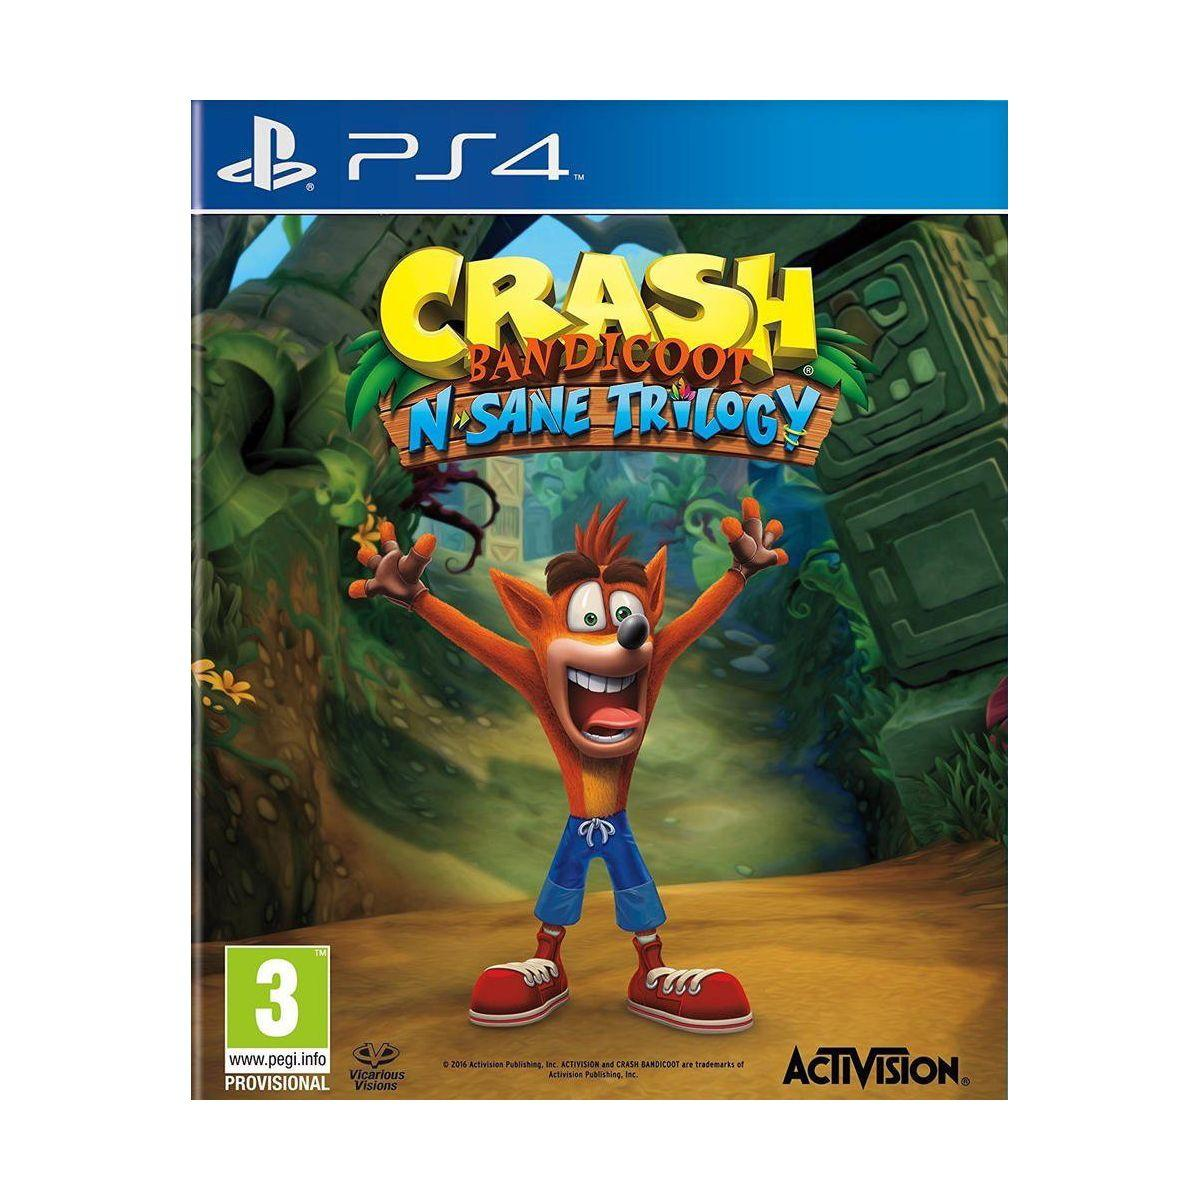 Jeu ps4 activision crash bandicoot n sane trilogy (photo)